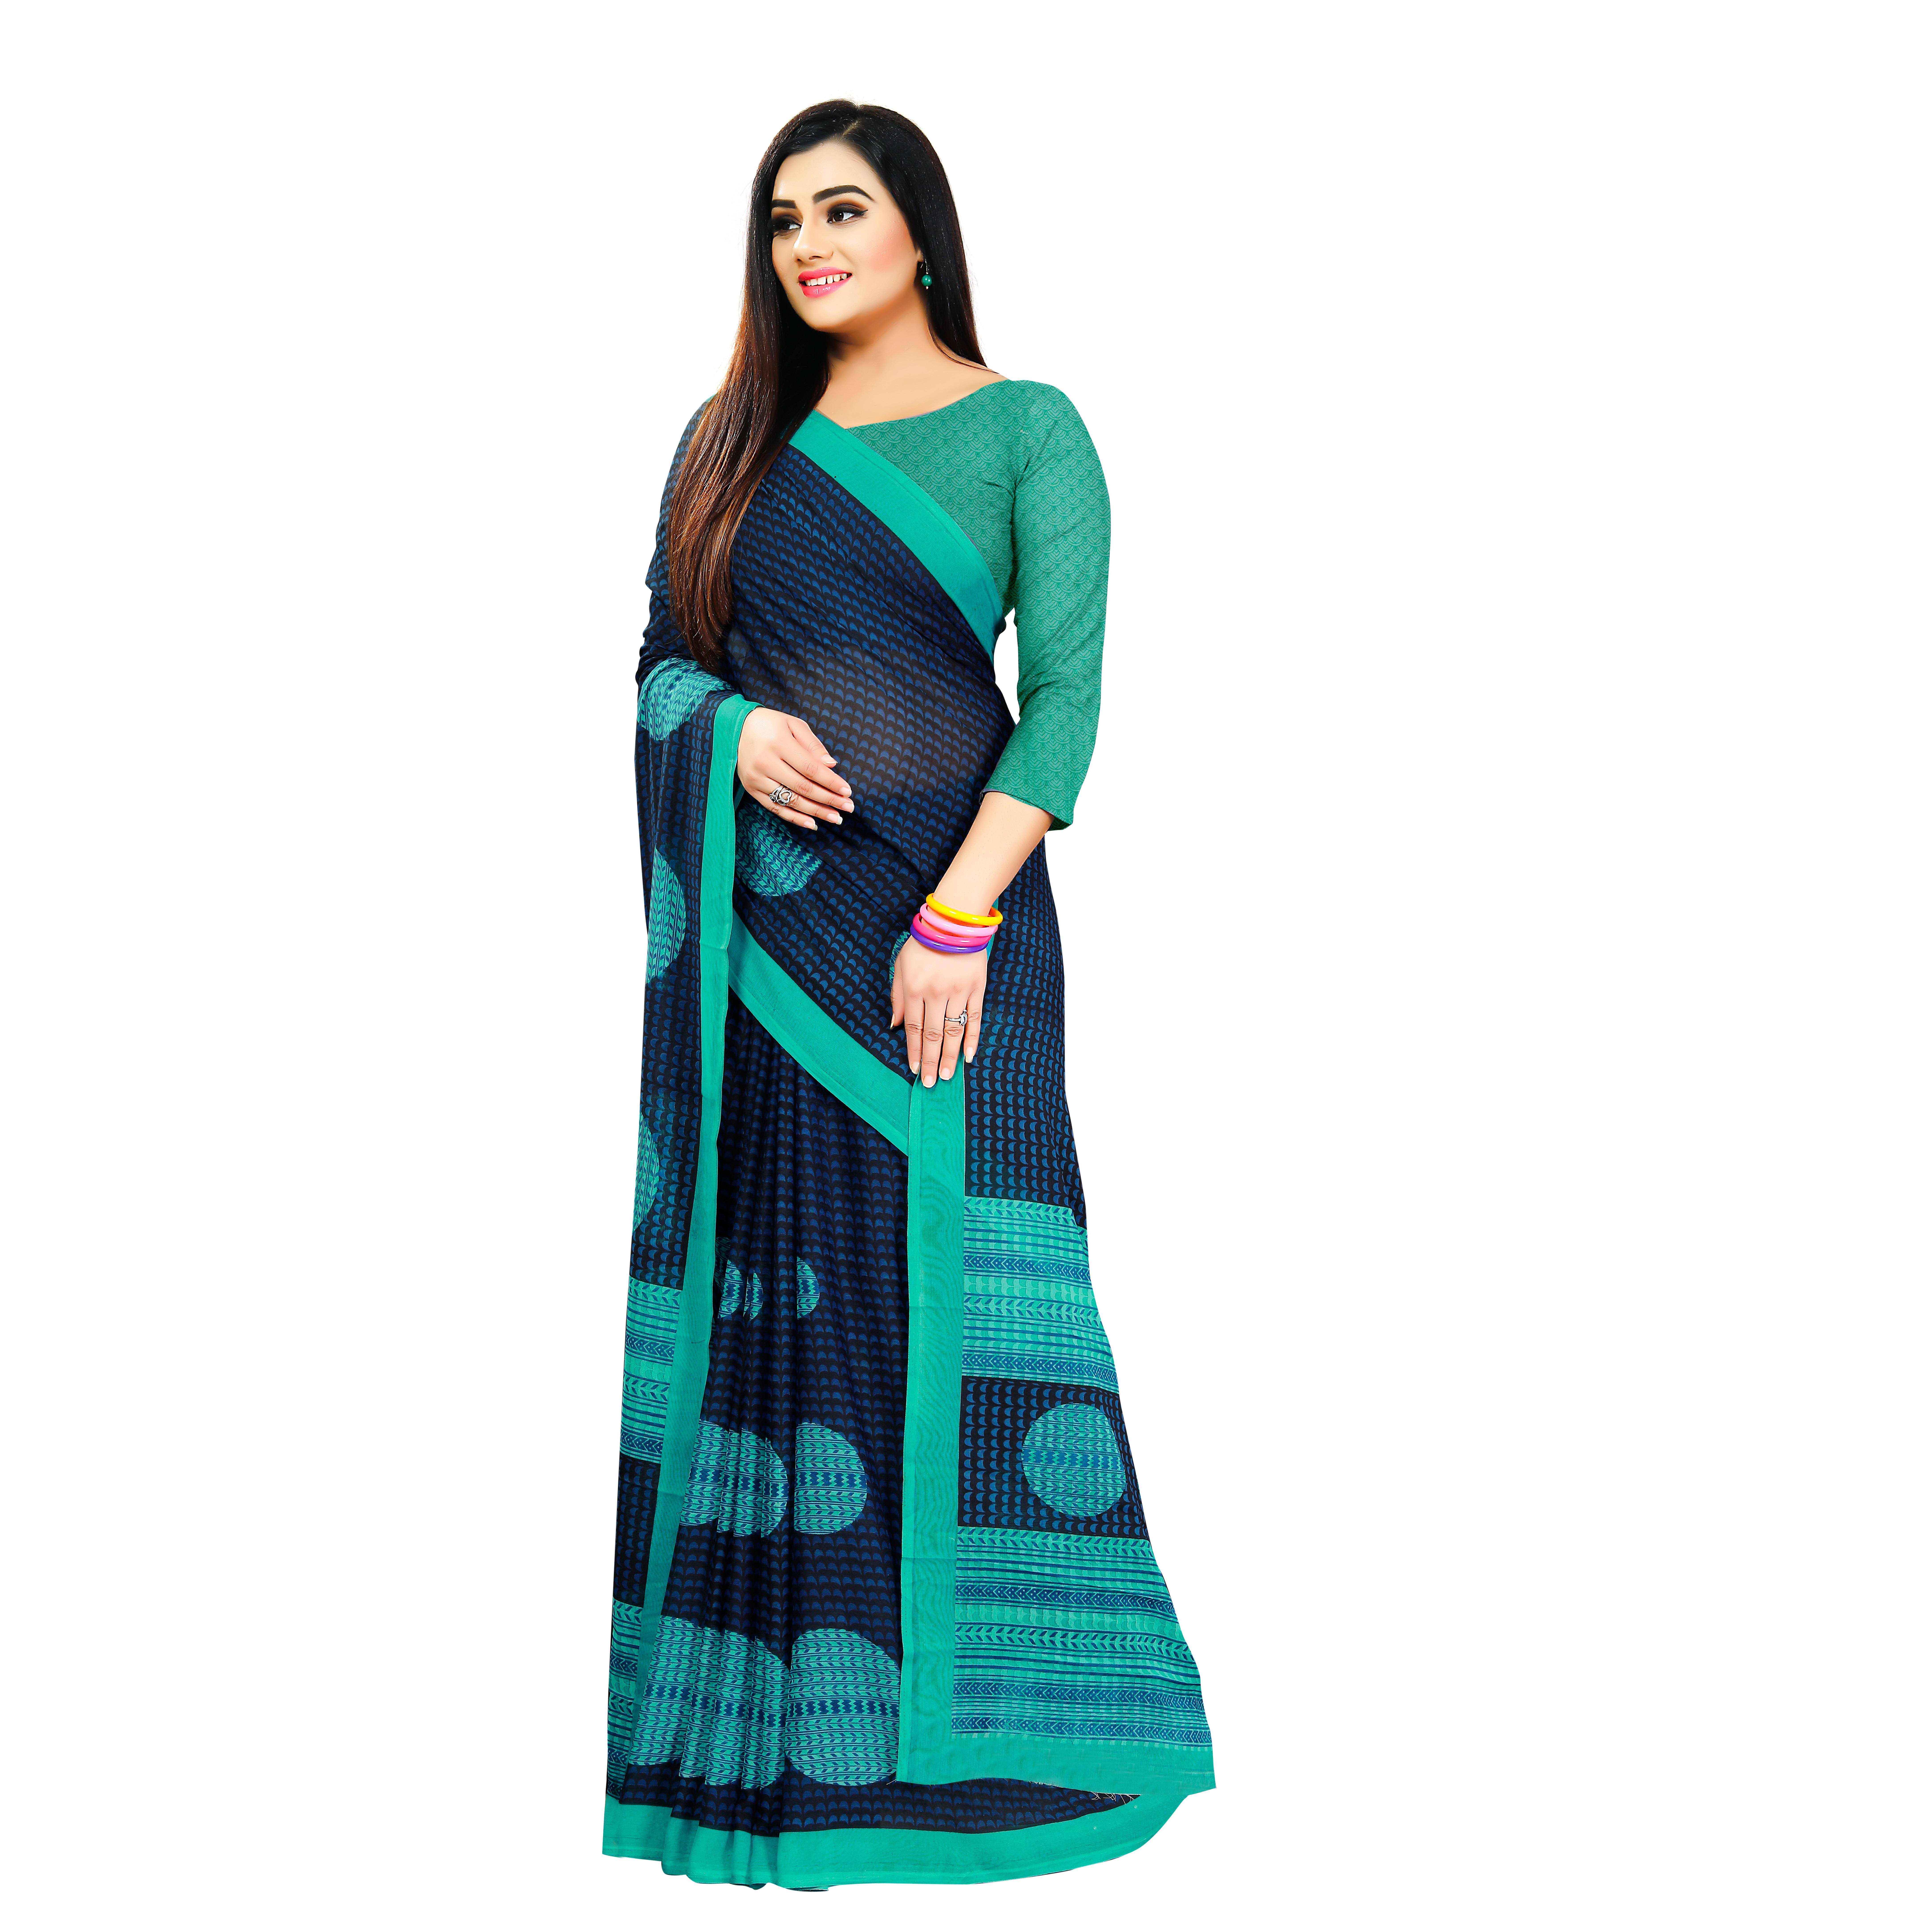 Engrossing Navy Blue Colored Casual Wear Printed Georgette Saree